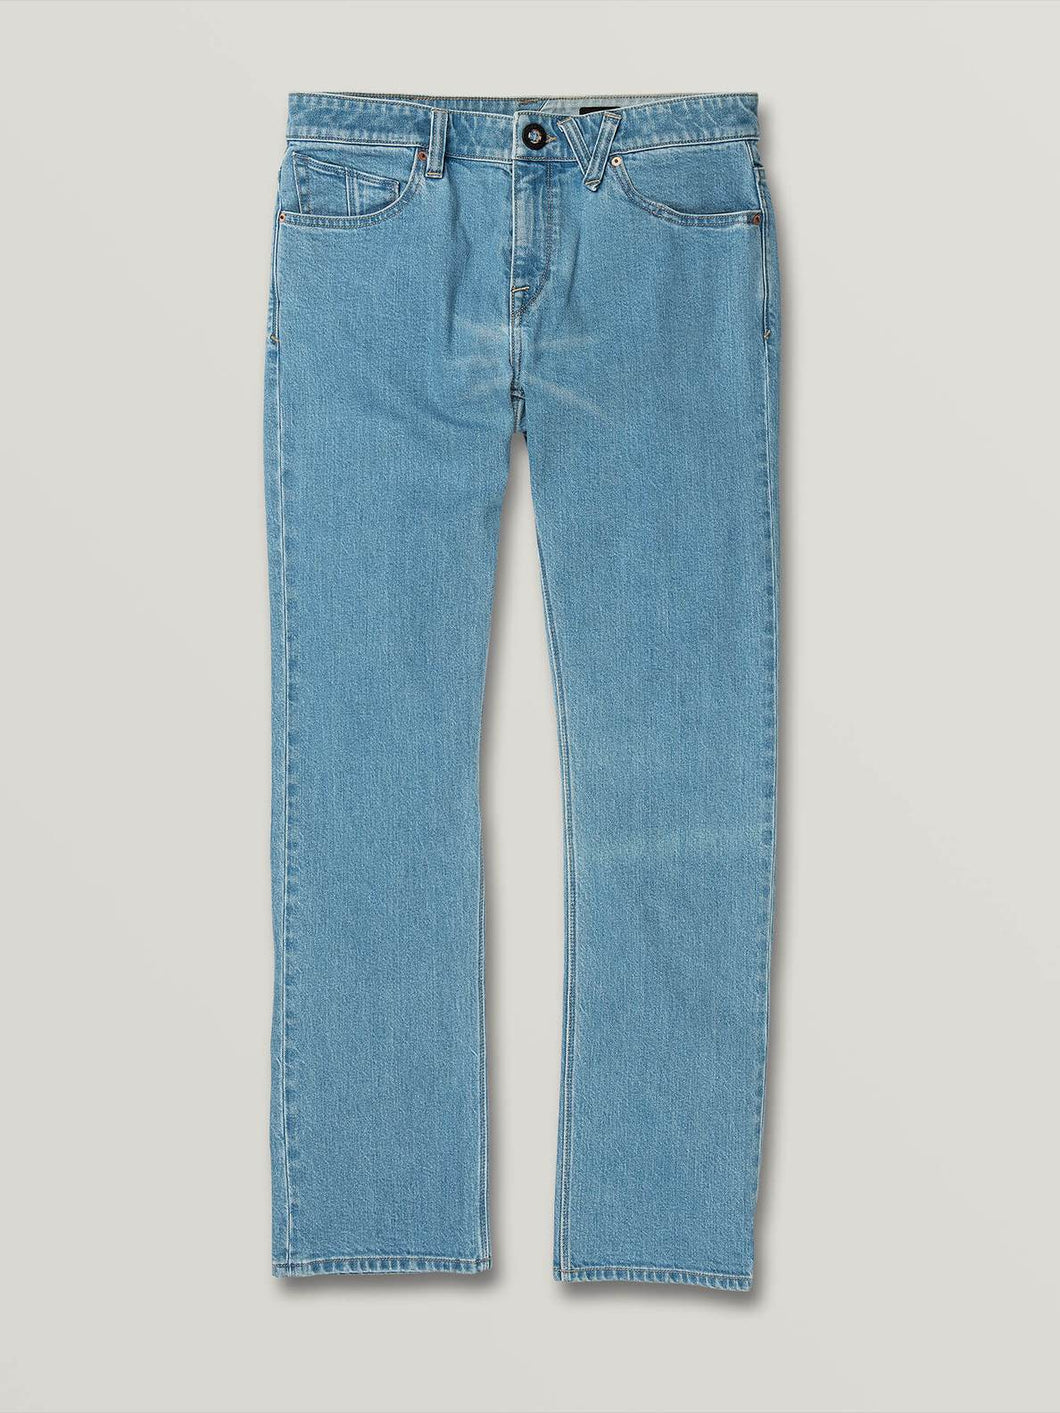 SOLVER DENIM / MODERN STRAIGHT JEAN